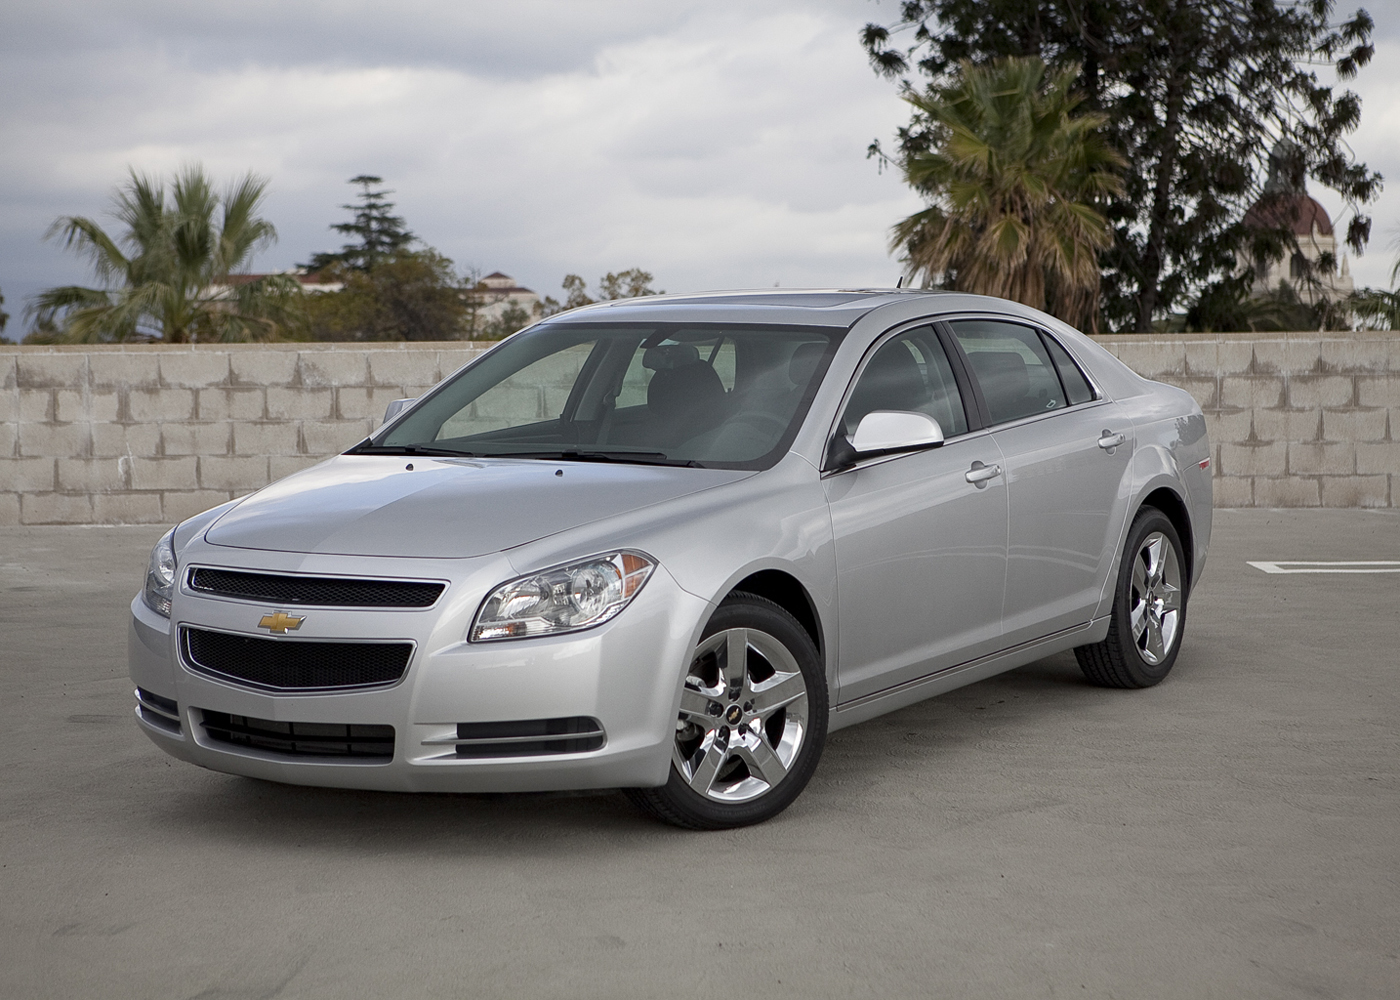 Hertz Auto Sales >> 2010 Chevrolet Malibu Expert and Consumer Reviews on EasyAutoSales.com